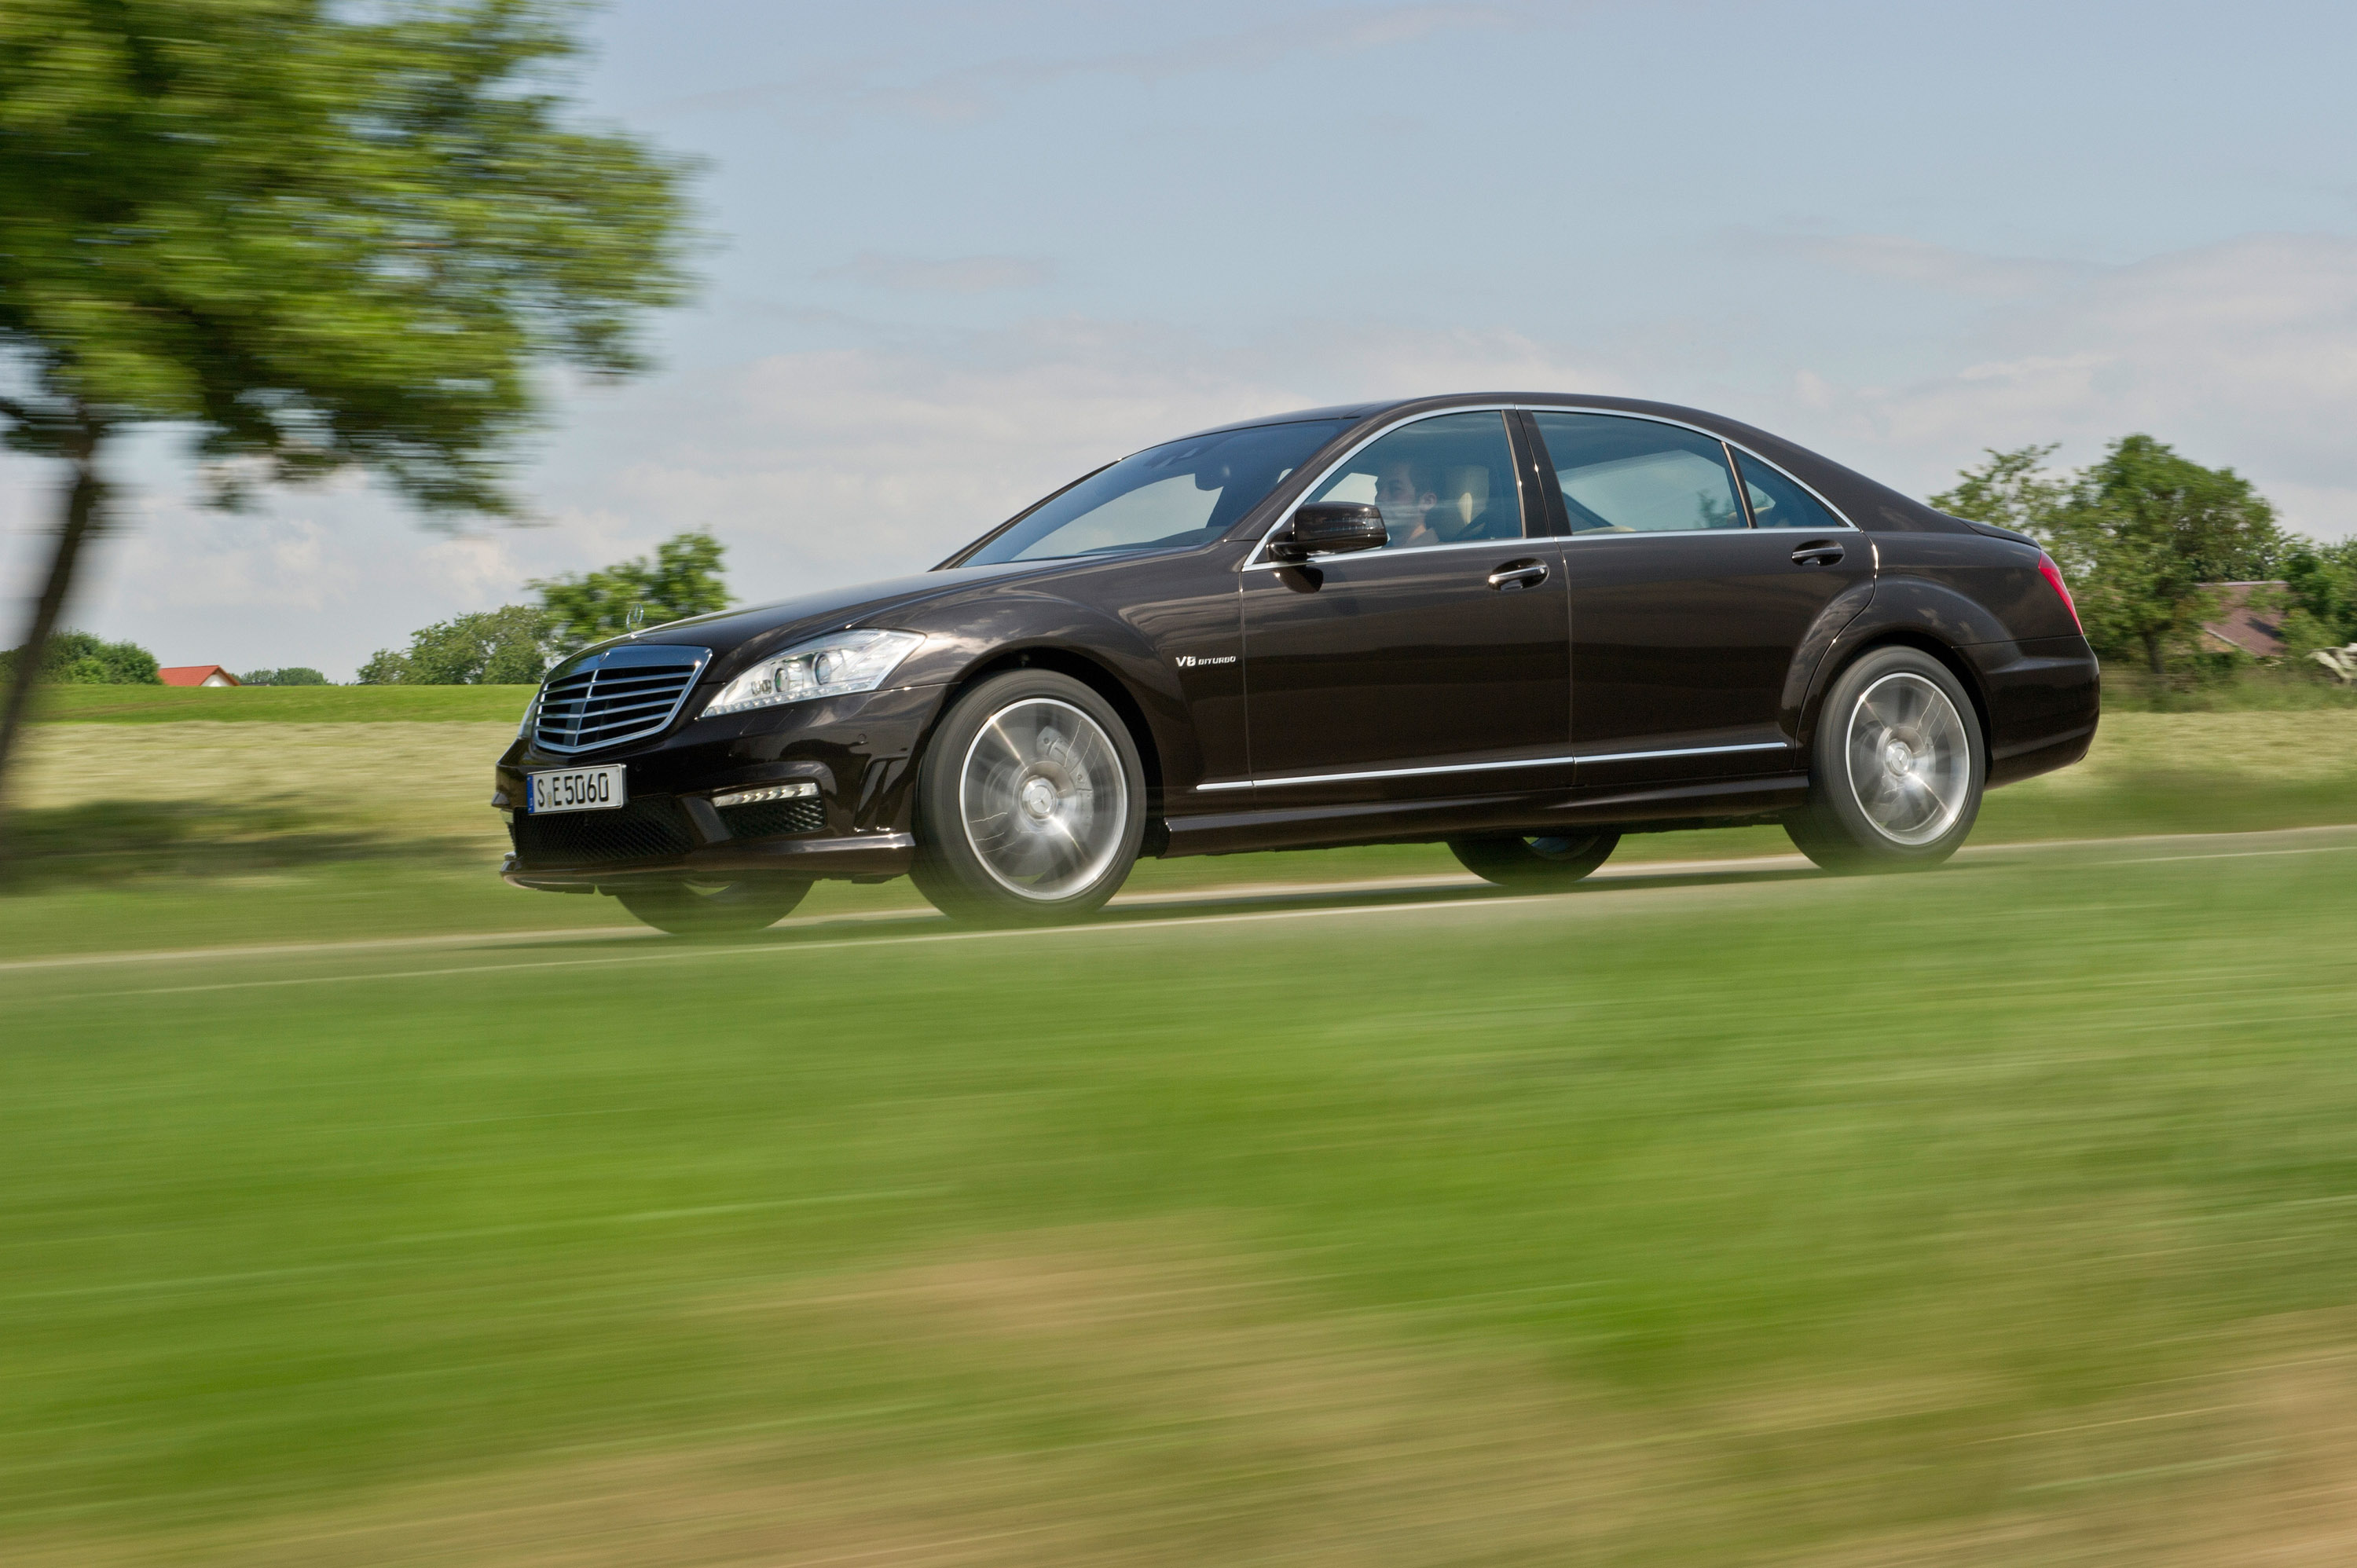 Mercedes-Benz S63 AMG - The ultimate high-performance седан - фотография №6